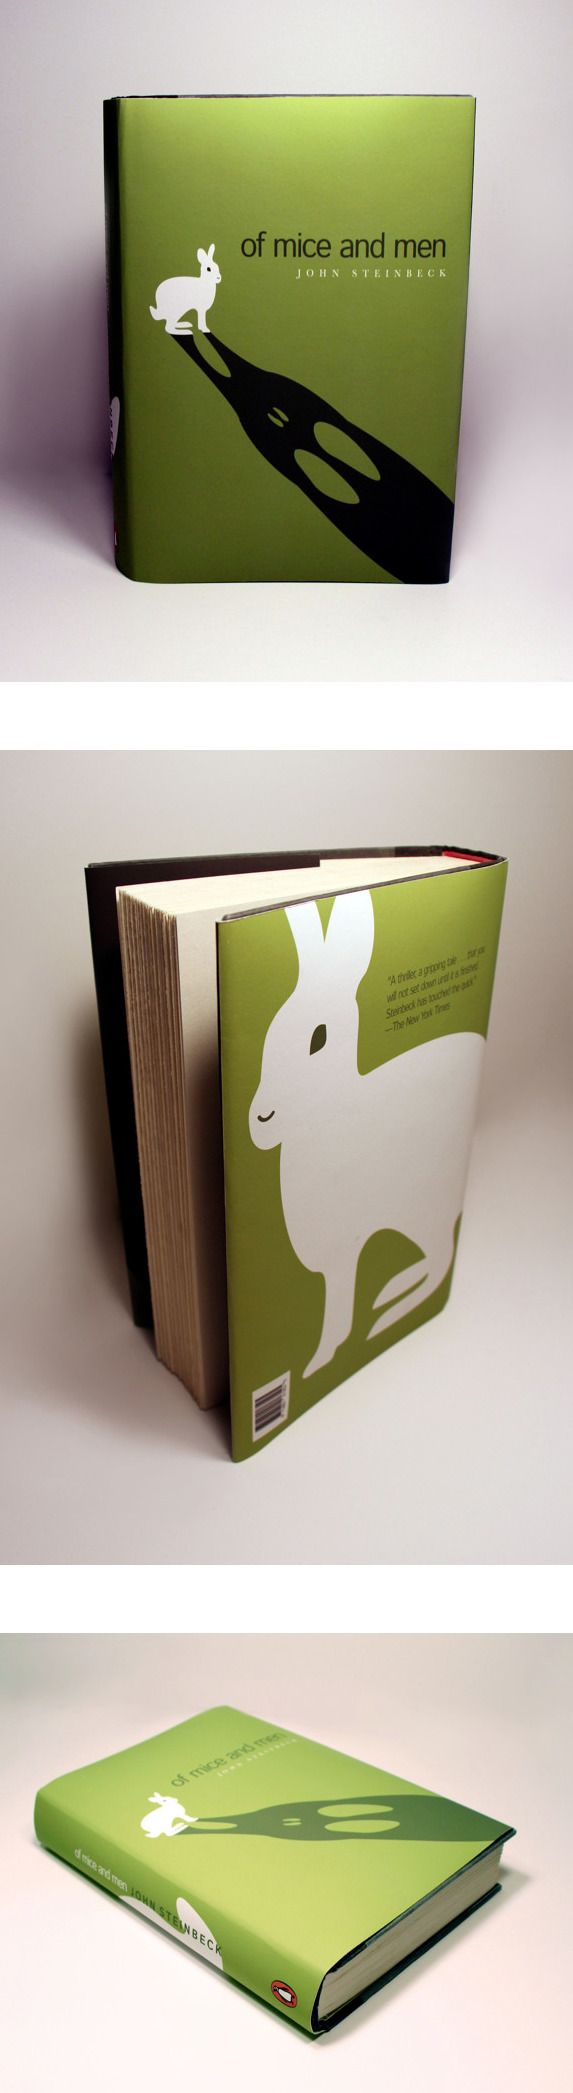 interesting idea of designing a book cover.